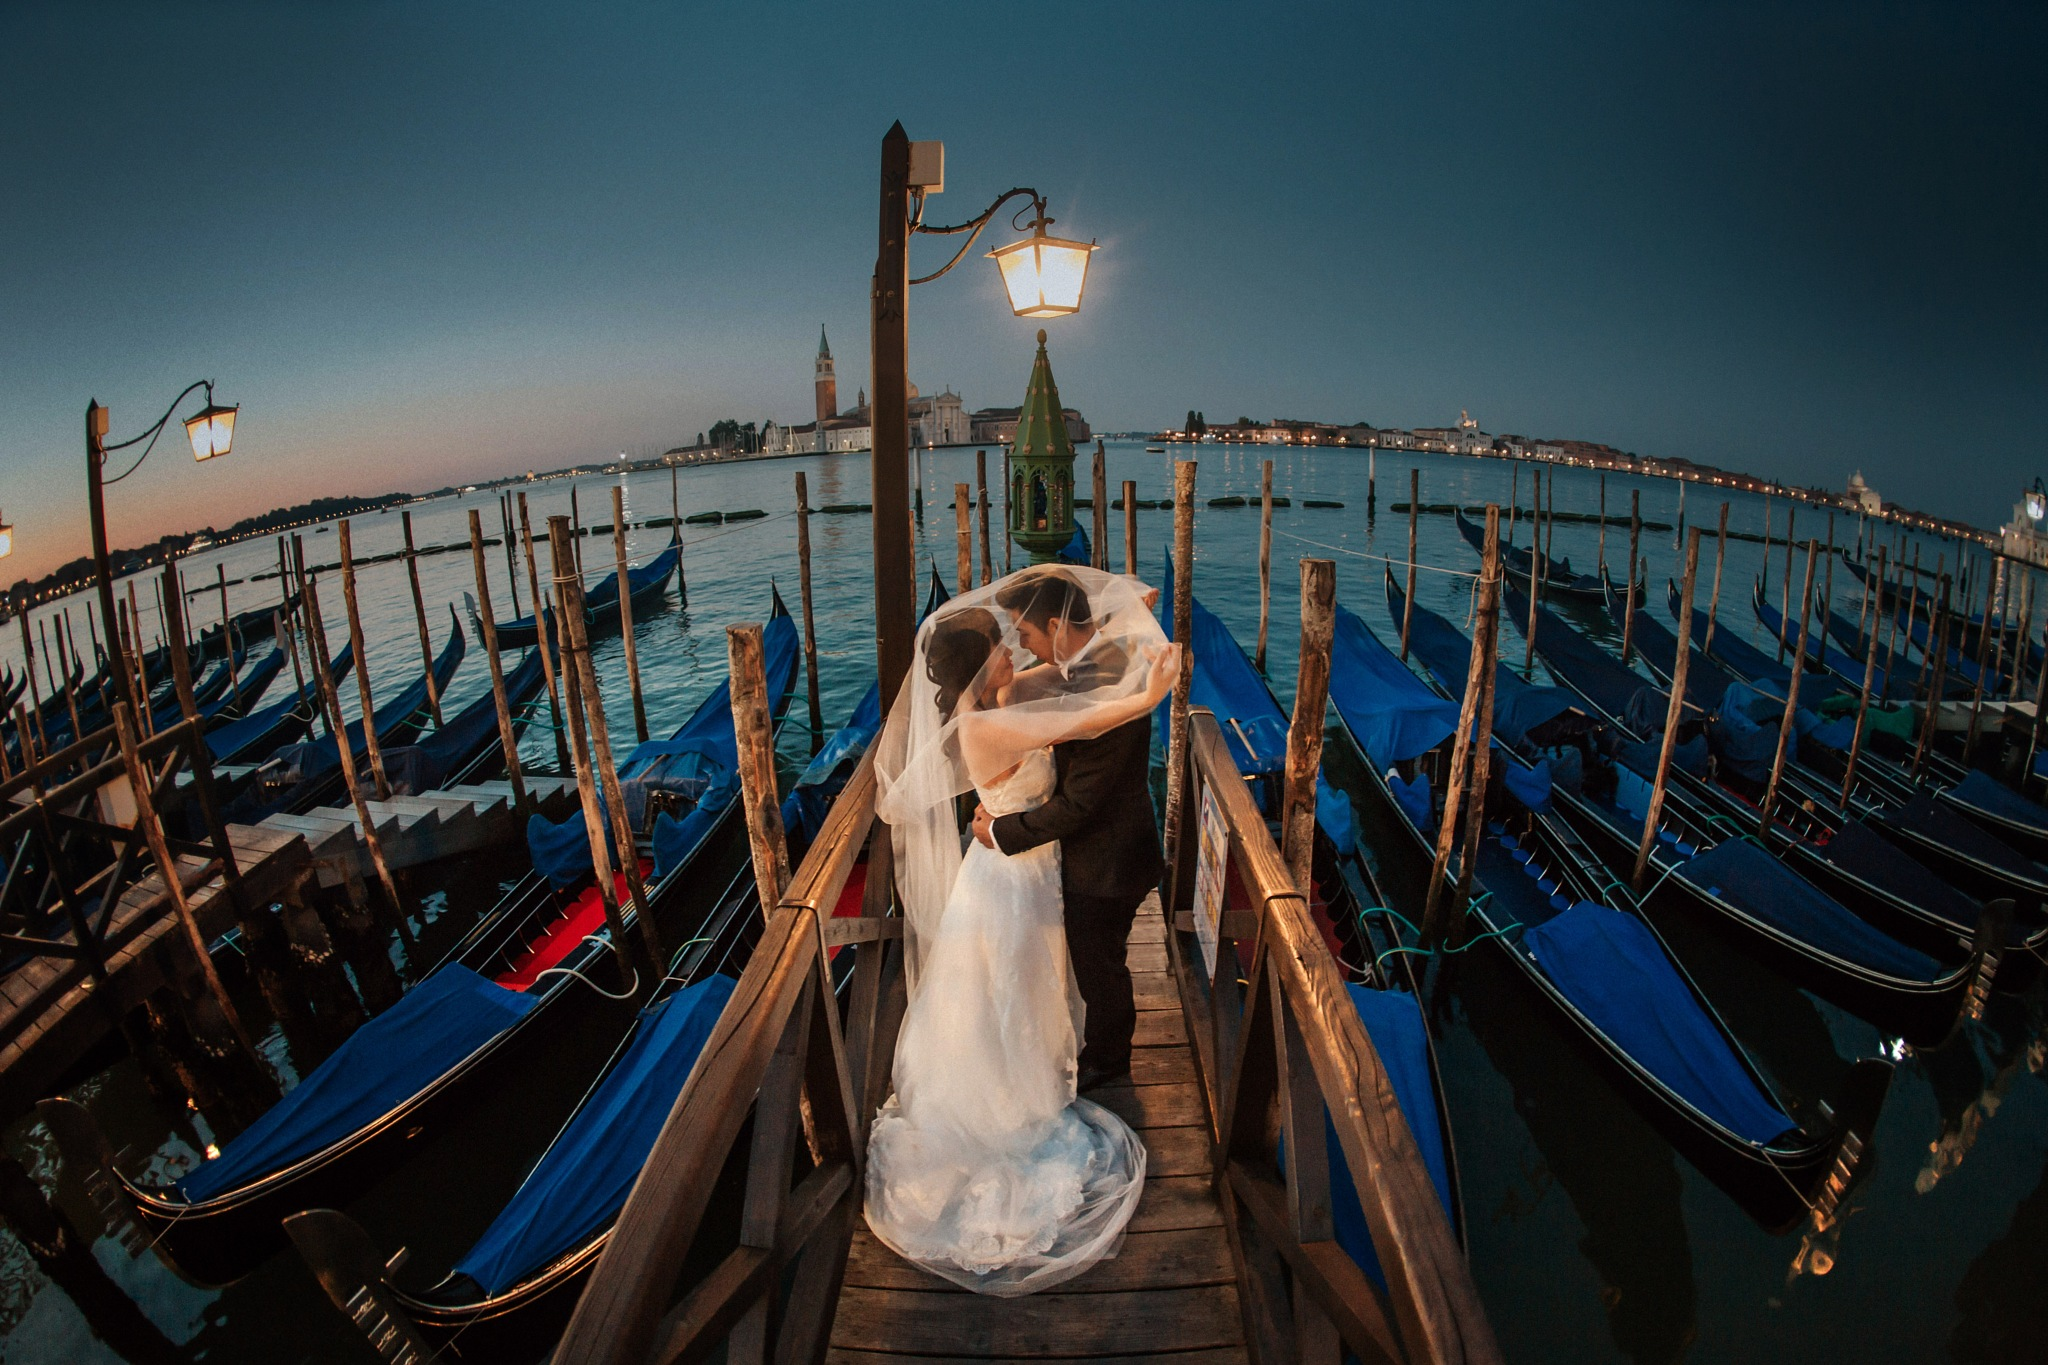 From Venice with love by vinion